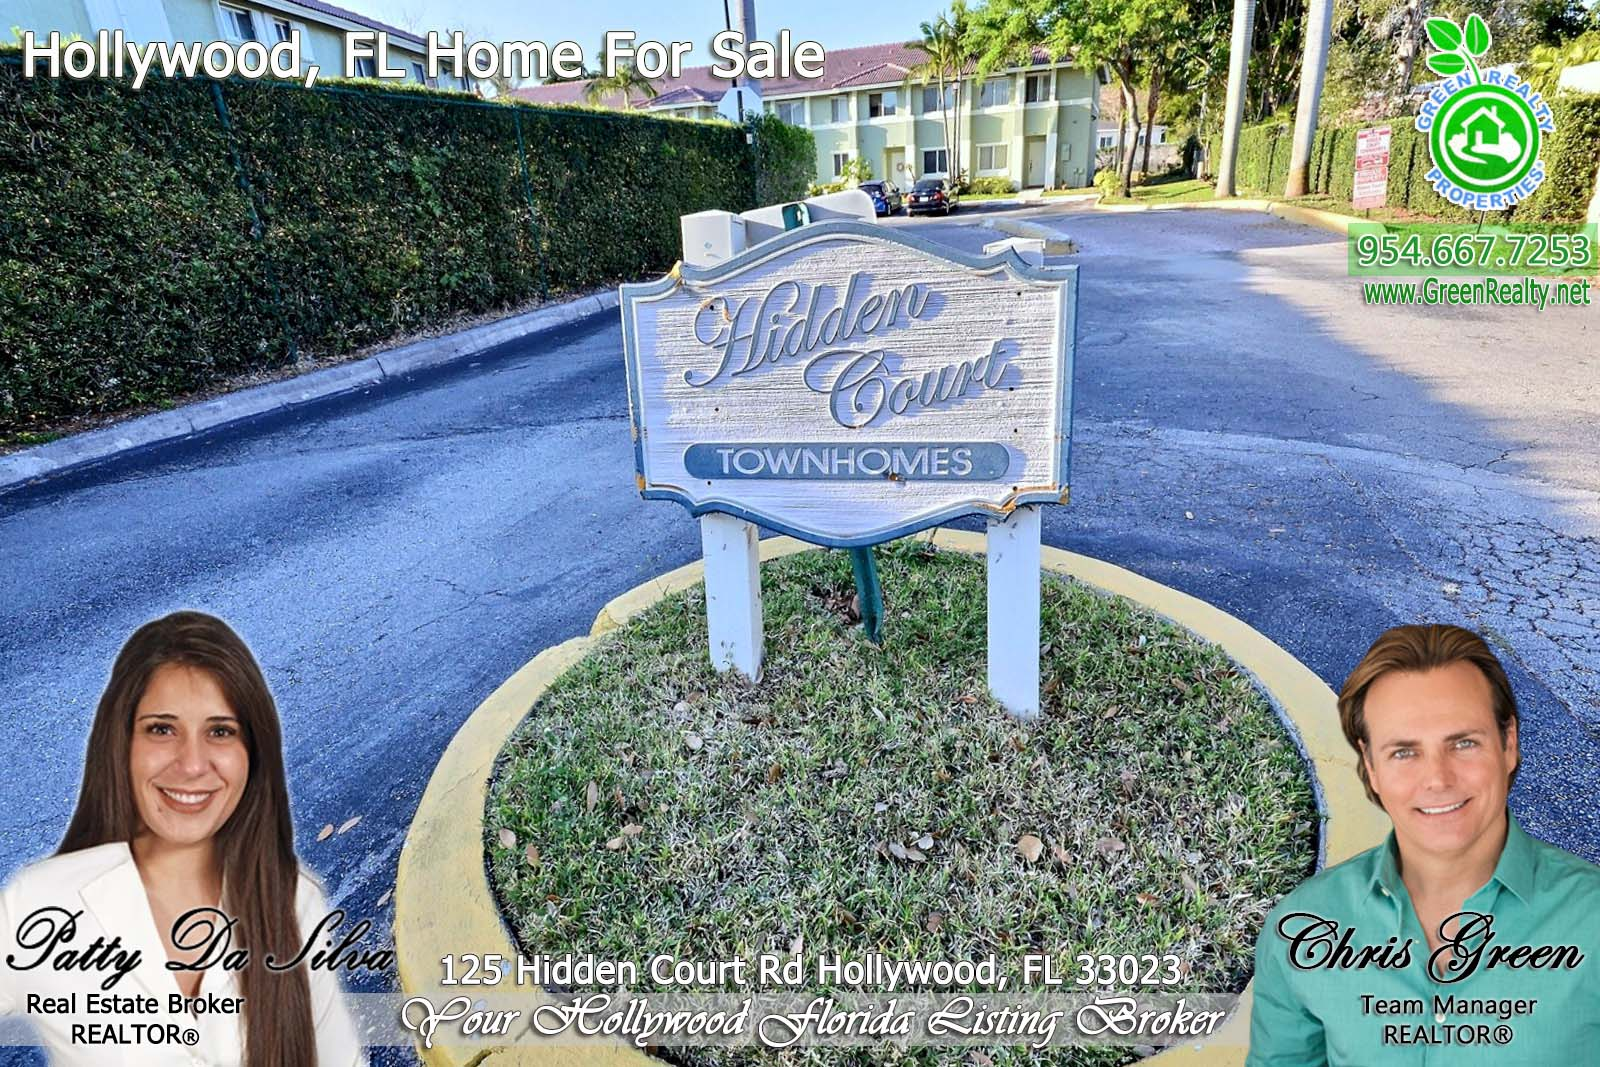 20 Hollywood Florida REALTORS (4)